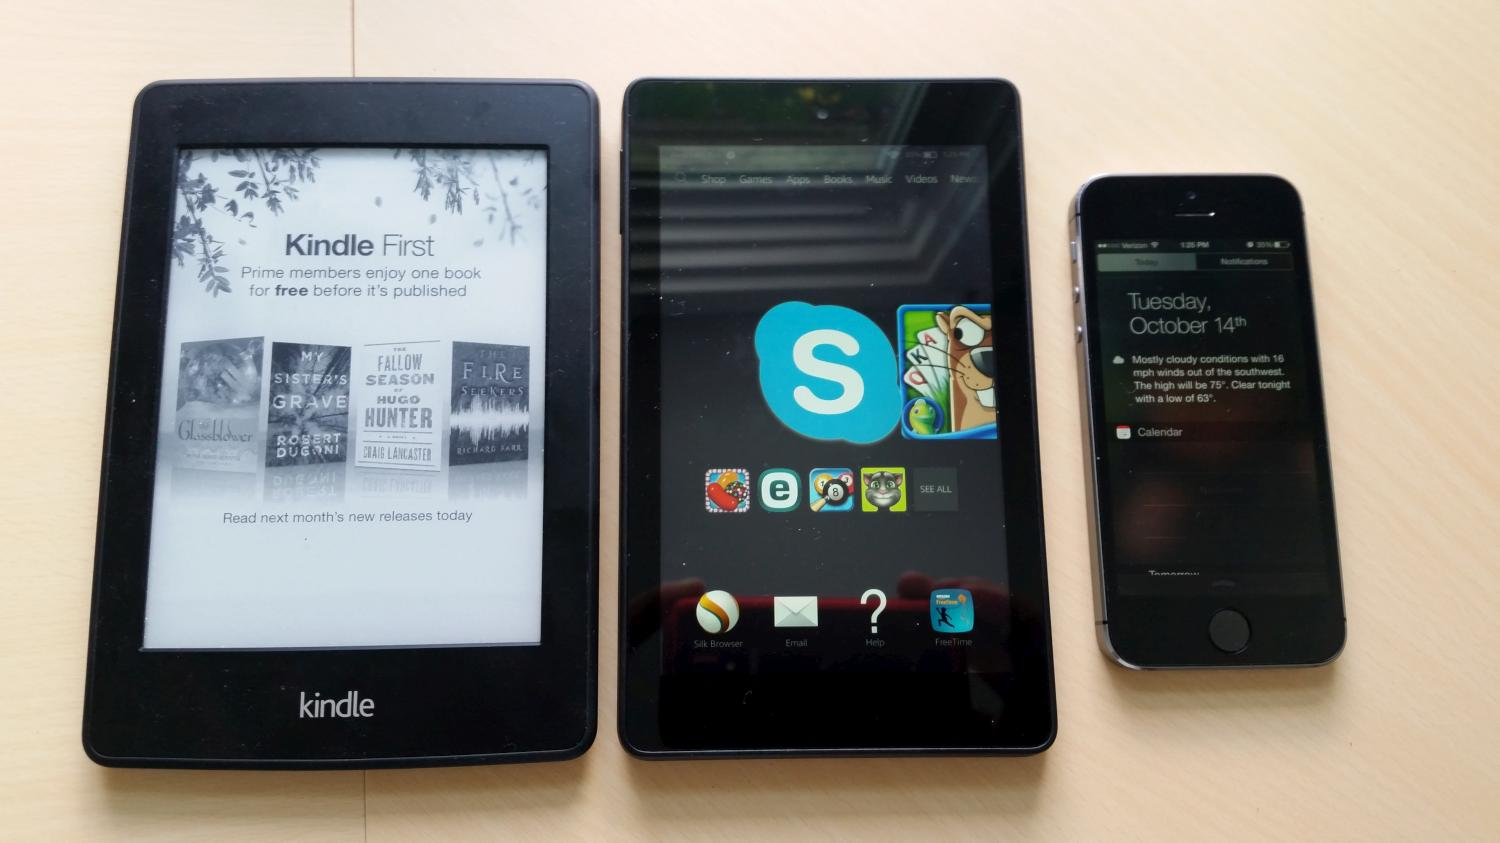 Kindle Paperwhite e-reader (left), Kindle Fire HD 6 tablet (middle), iPhone 5S (right)